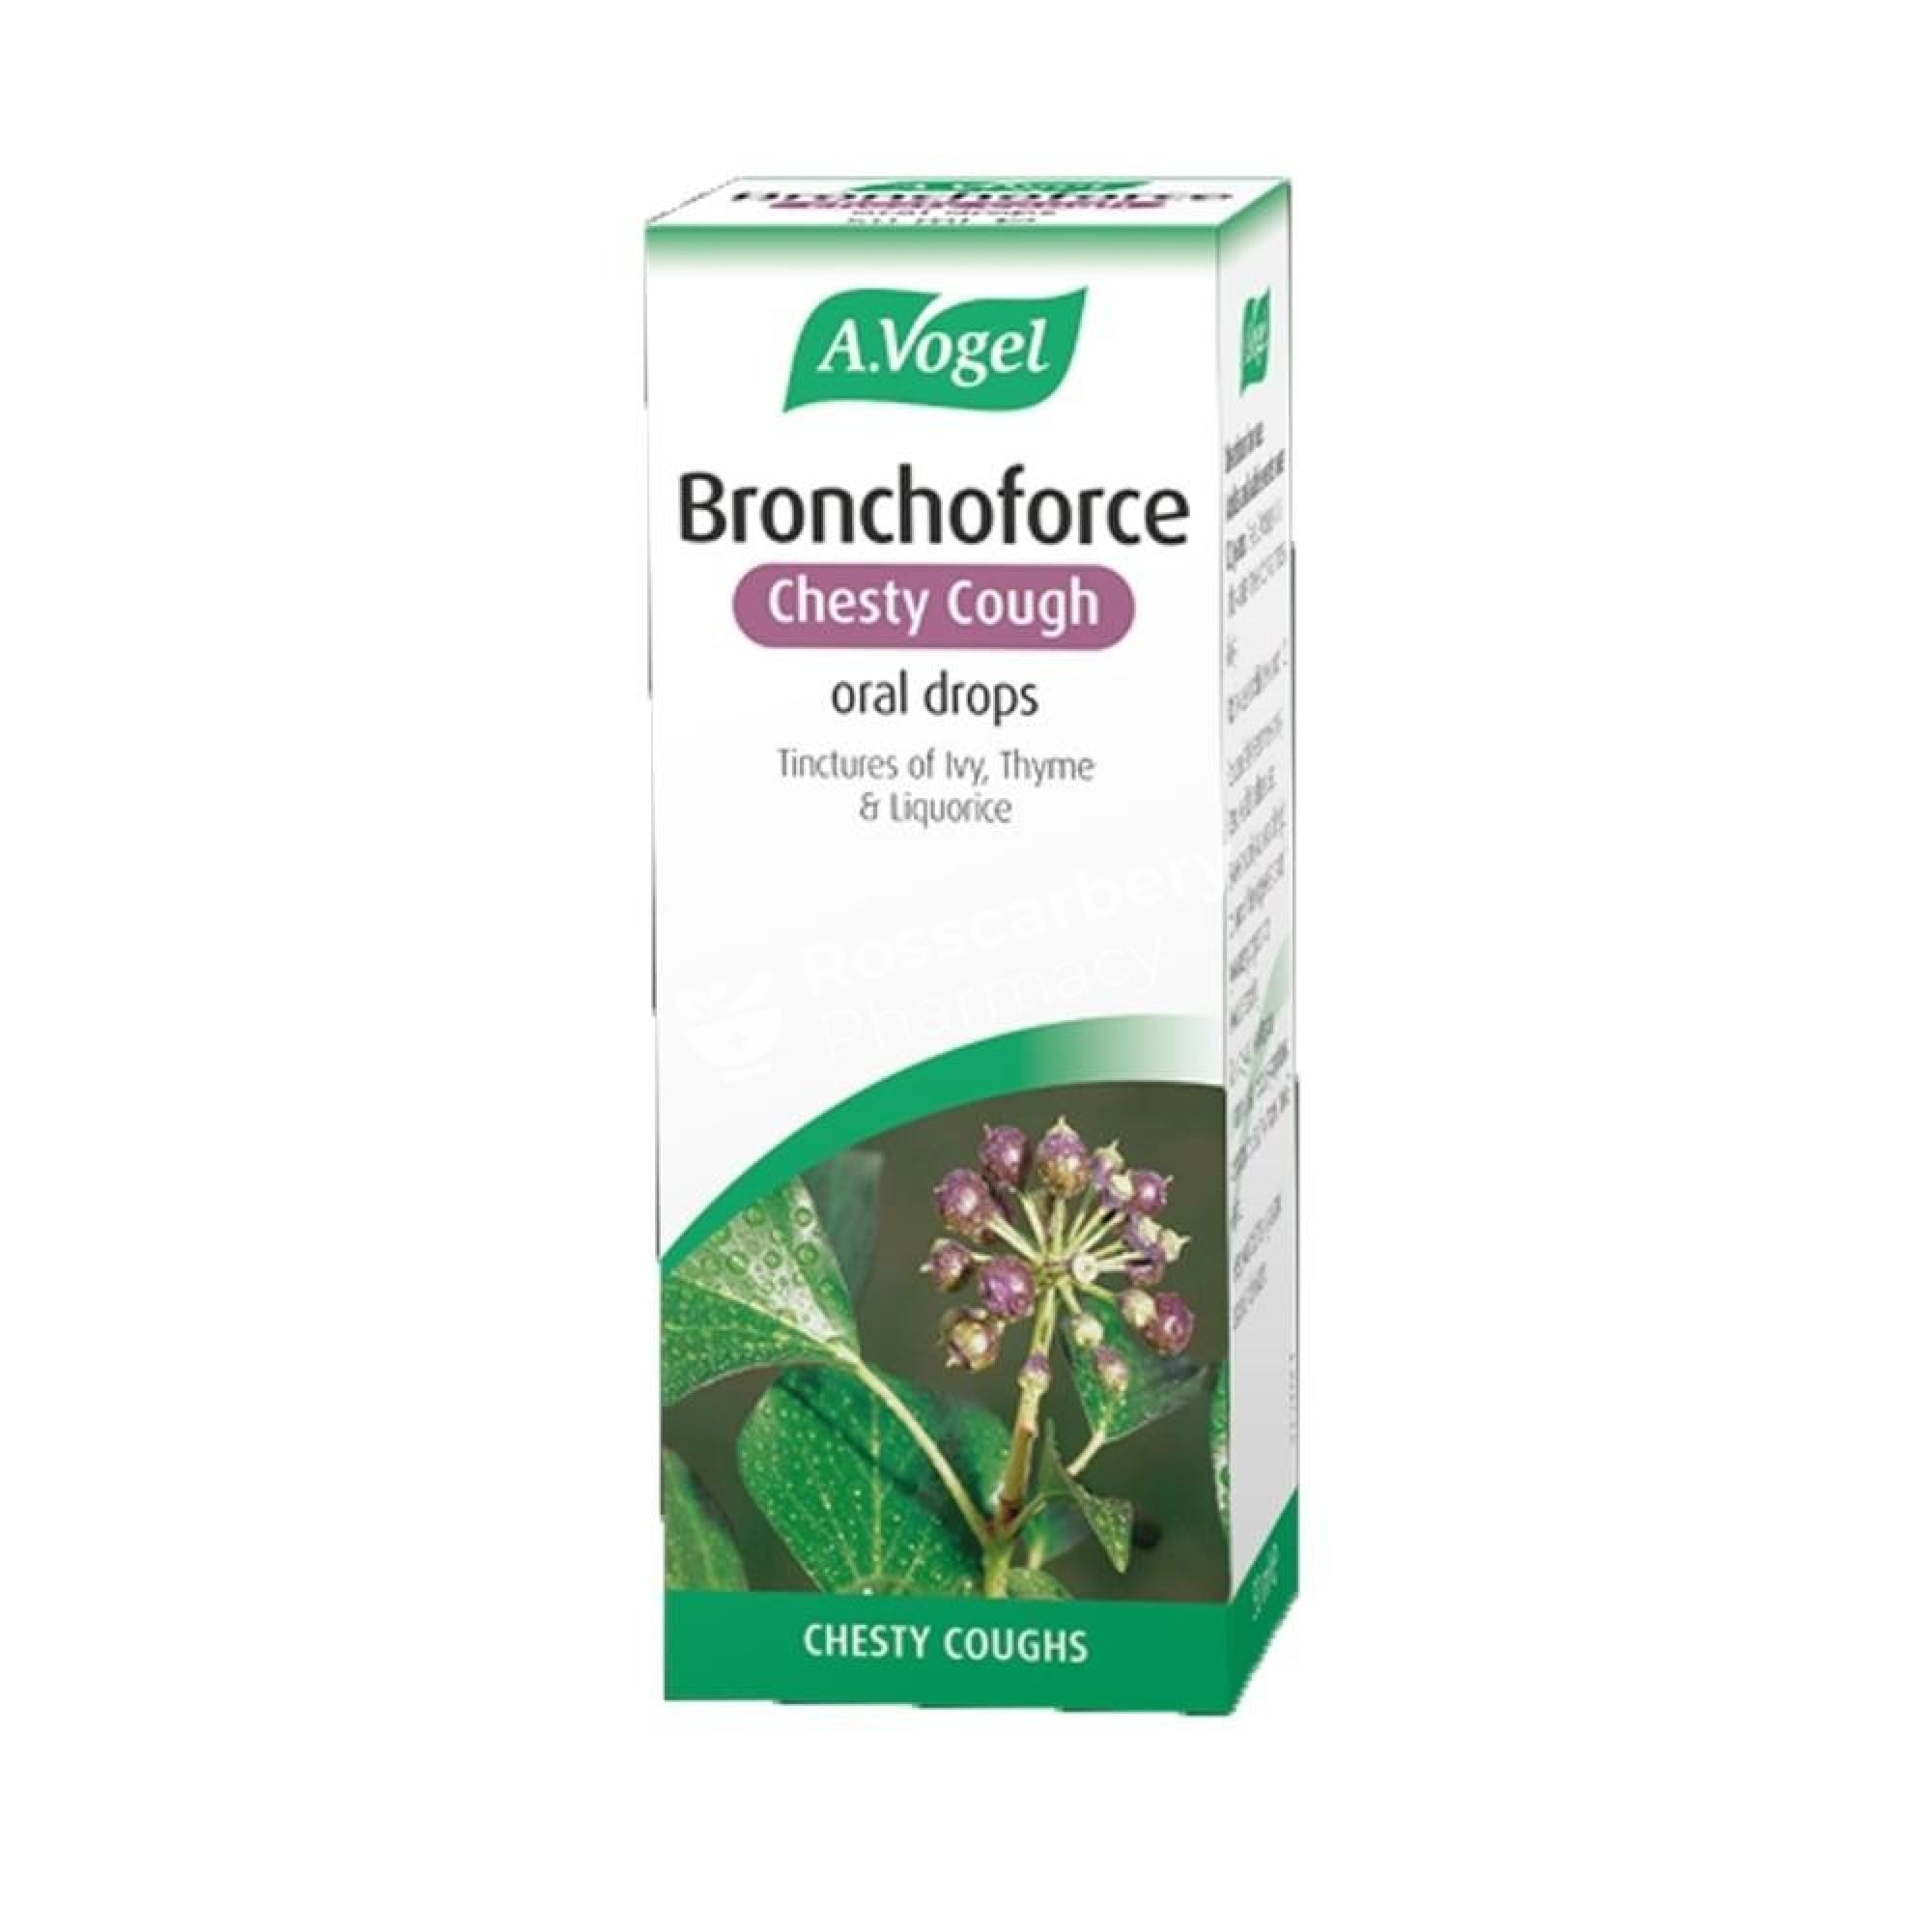 A Vogel Bronchoforce Oral Drops - Chesty Cough Herbal & Traditional Remedies